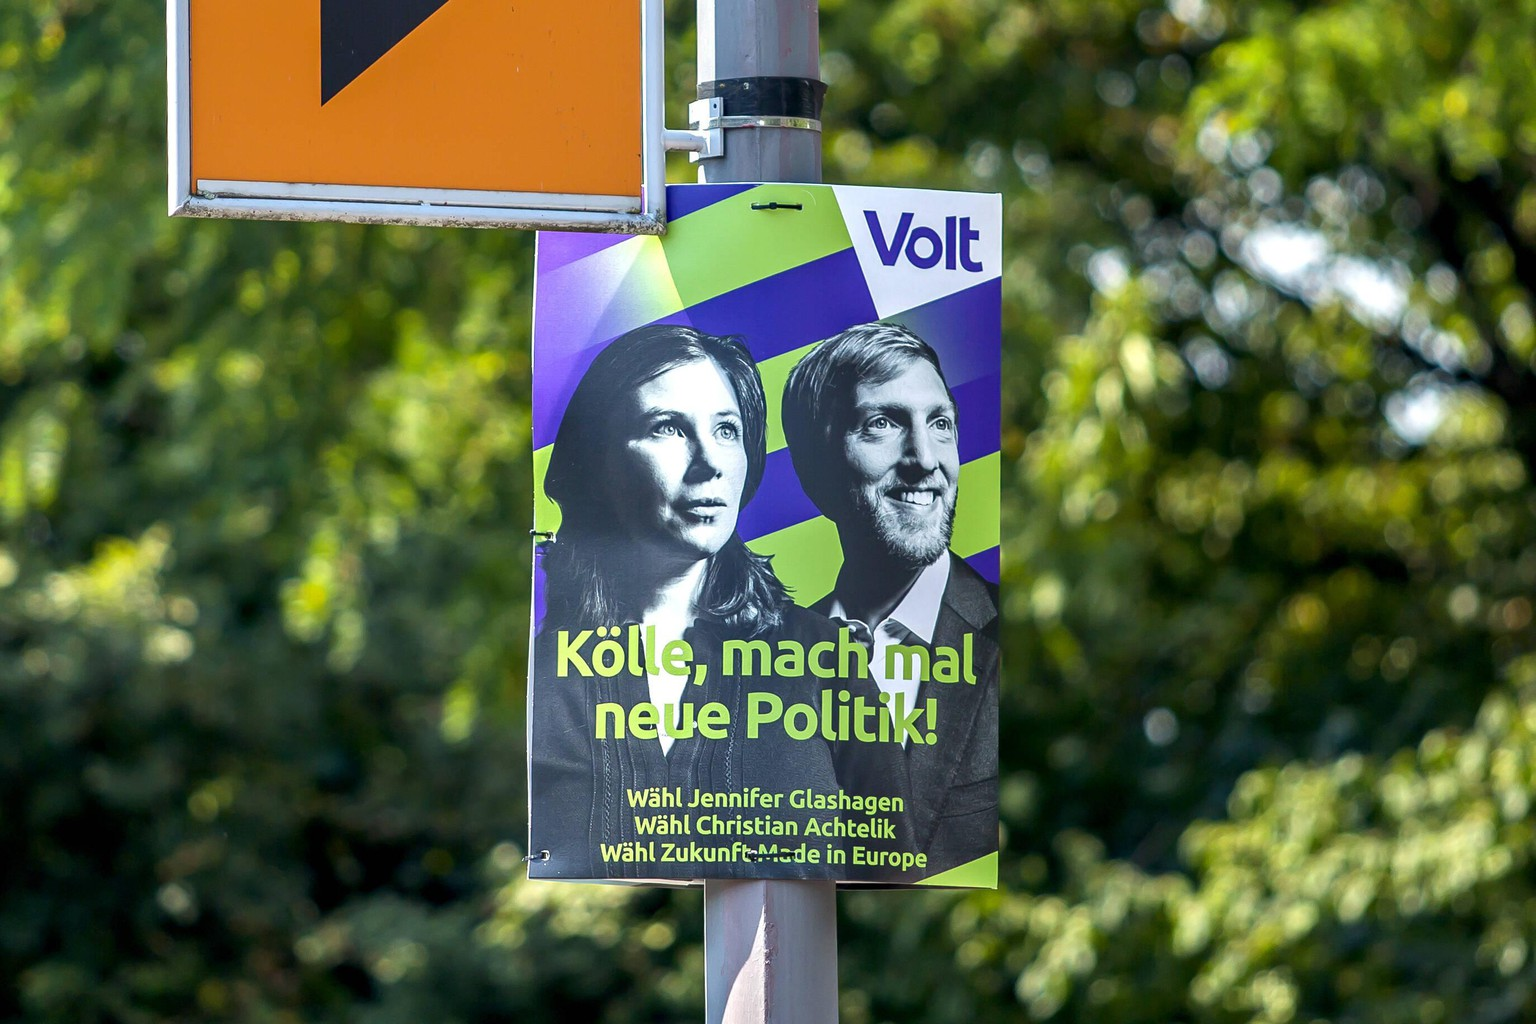 Ein Wahlplakat für die Kommunalwahl 2020 in NRW hängt an einer Straße in Köln. Am 13. September 2020 werden in Nordrhein-Westfalen Oberbürgermeister, Landräte, Stadträte und Kreistage neu gewählt. Volt - Kölle, mach mal neue Politik - Jennifer Glashagen - Christian Achtelik Wahlplakate Kommunalwahl NRW *** An election poster for the 2020 local elections in NRW hangs on a street in Cologne On 13 September 2020, mayors, county councils, city councils and district councils in North Rhine-Westphalia will be elected Volt Kölle, make new politics Jennifer Glashagen Christian Achtelik Election posters for the NRW local elections